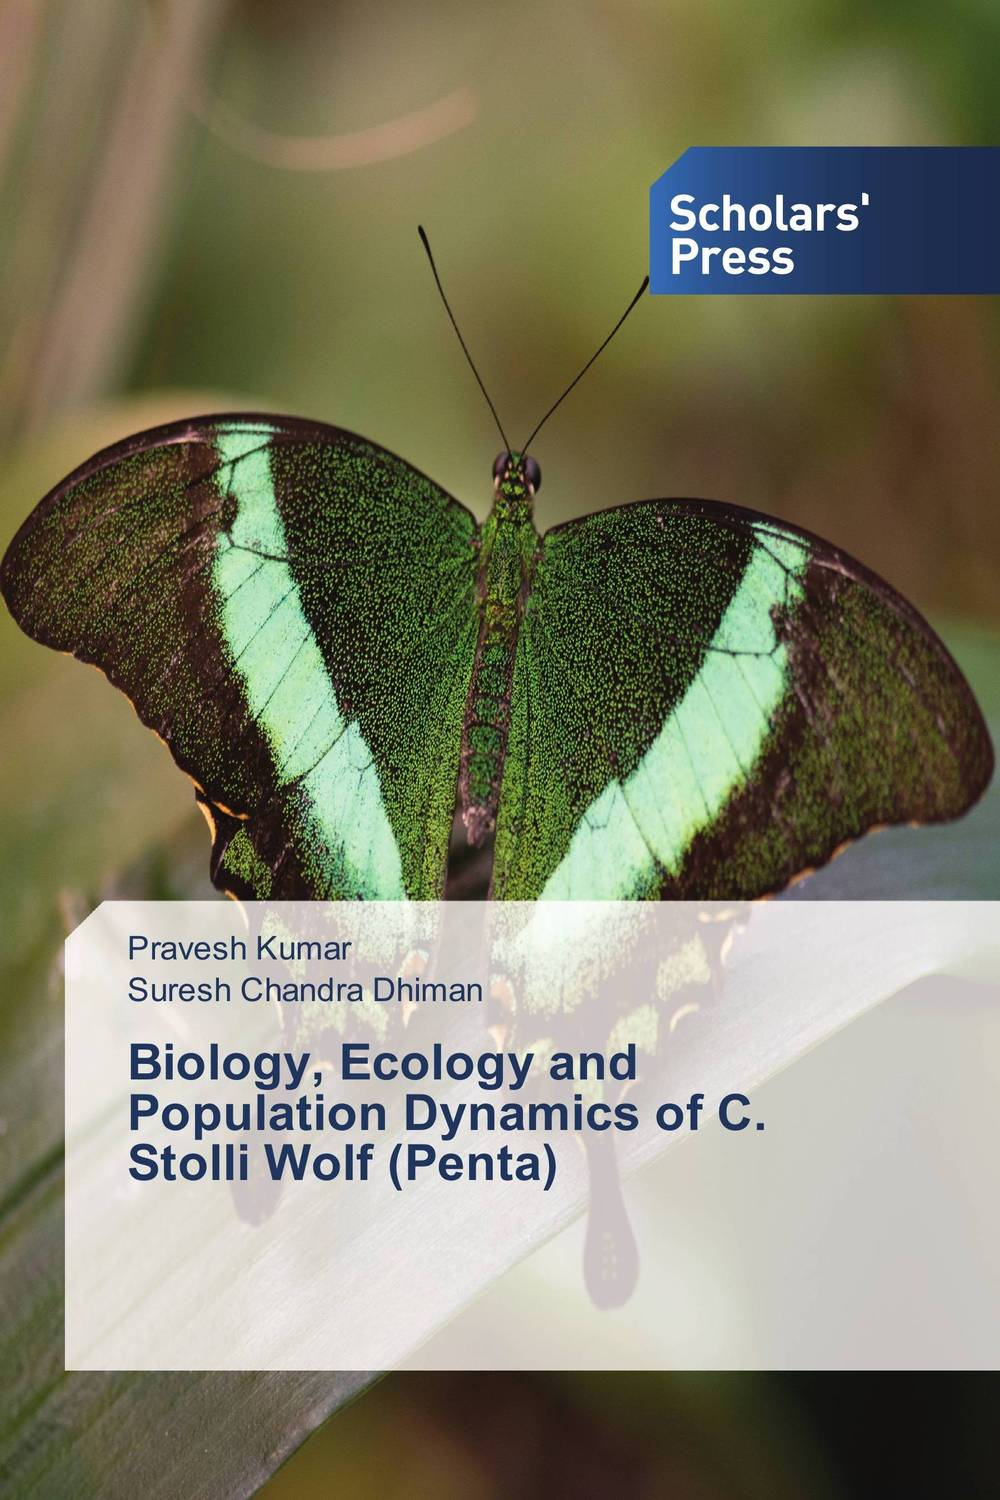 Biology, Ecology and Population Dynamics of C. Stolli Wolf (Penta) the ecology and biology of nephrops norvegicus 64